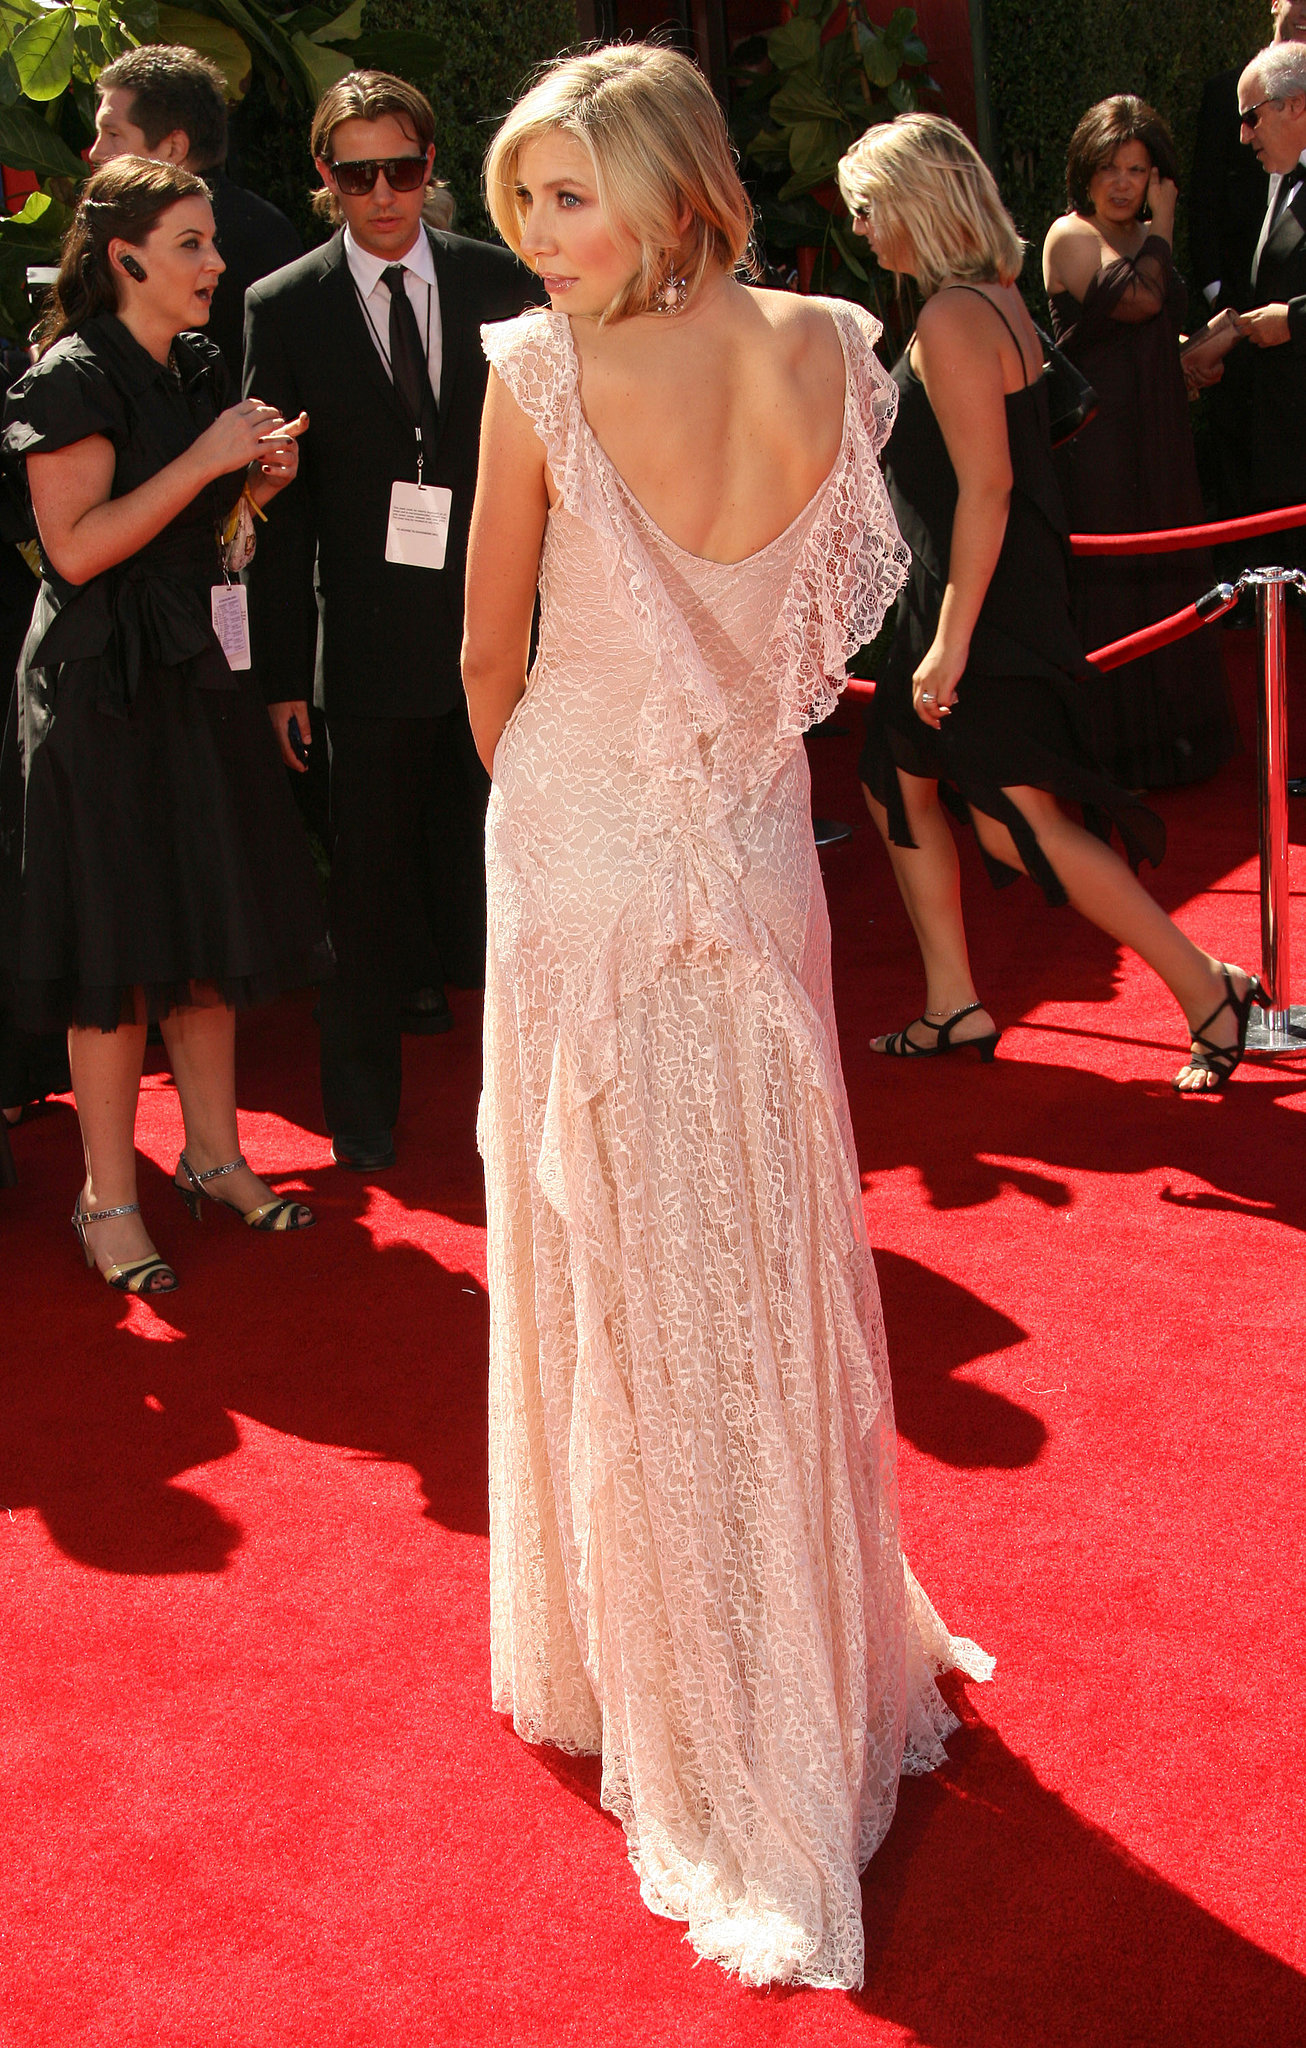 Sarah Chalke showed off all angles of her beaded dress in 2006.